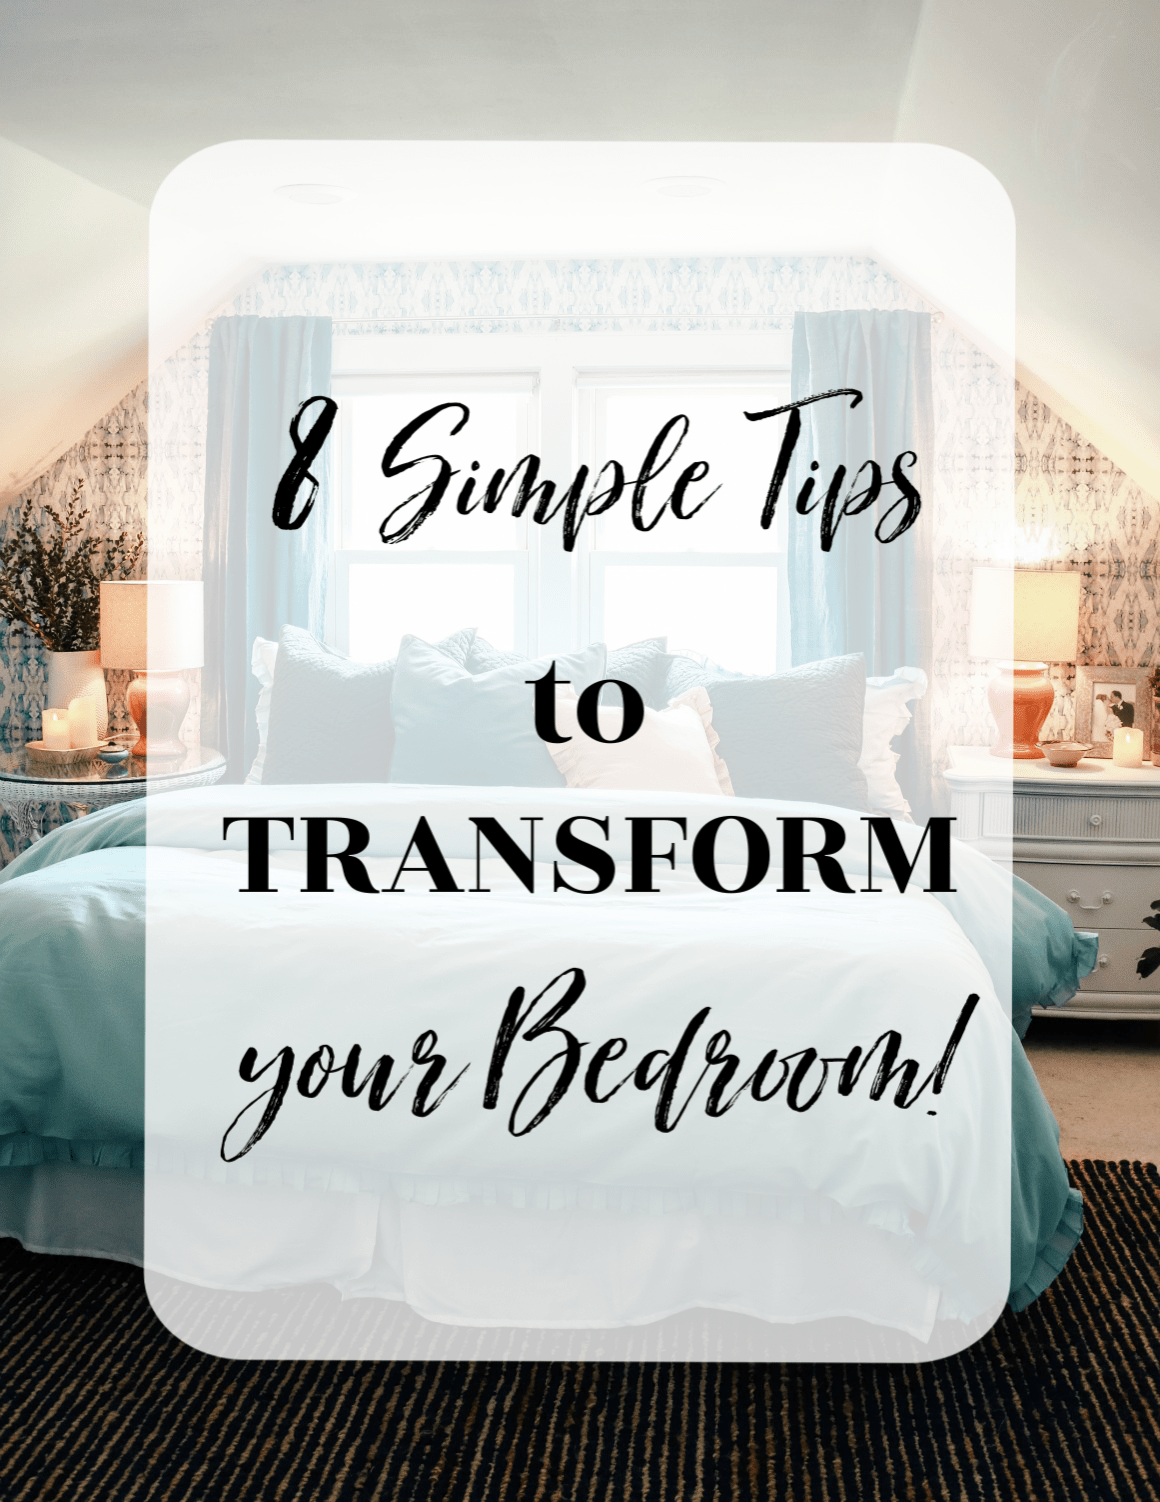 Simple Tips to TRANSFORM a Bedroom!!!!